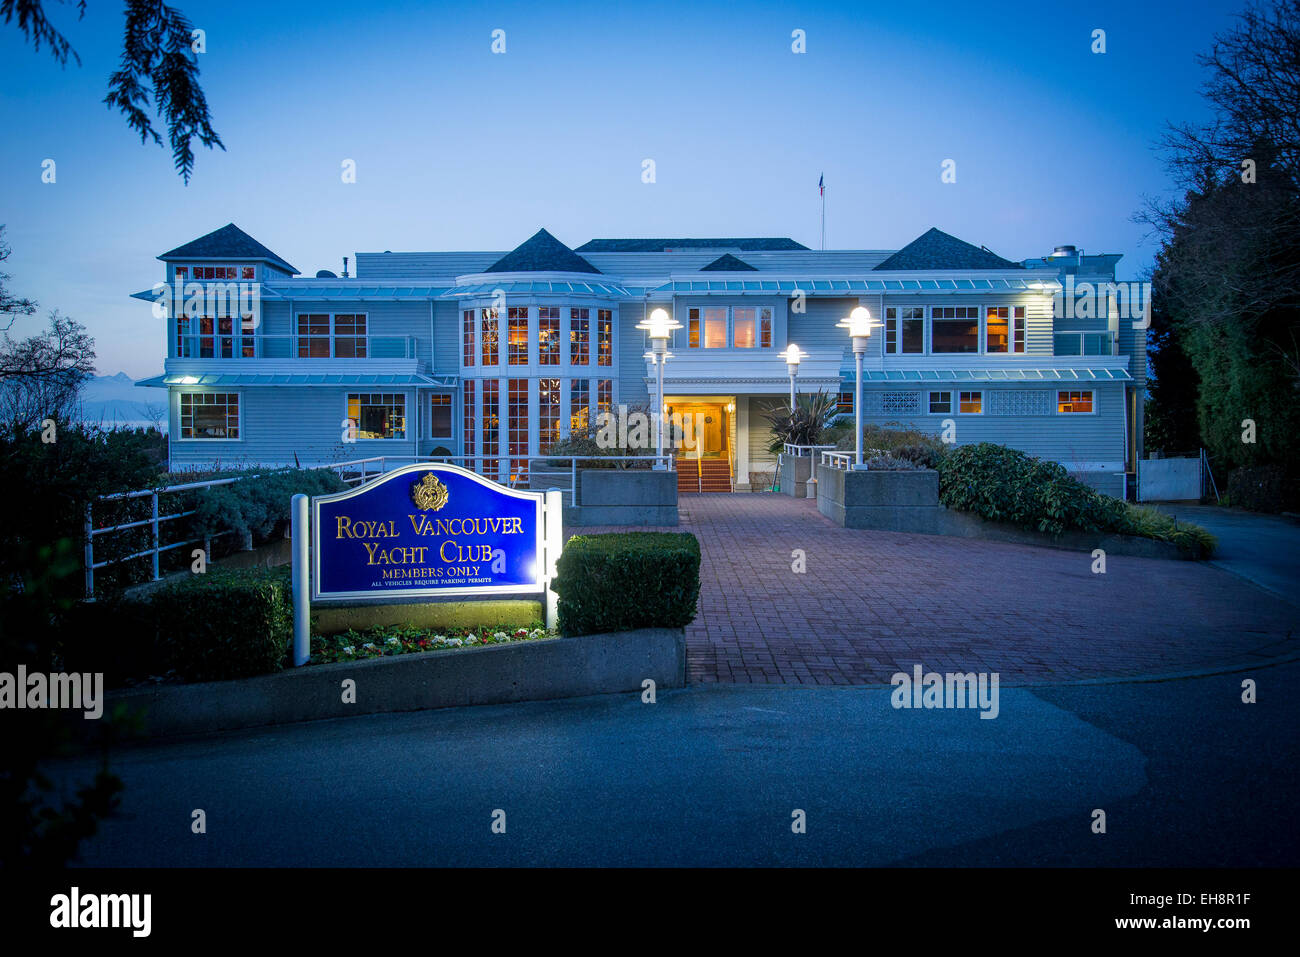 Clubhouse, the Royal Vancouver Yacht Club, Vancouver, British Columbia, Canada - Stock Image